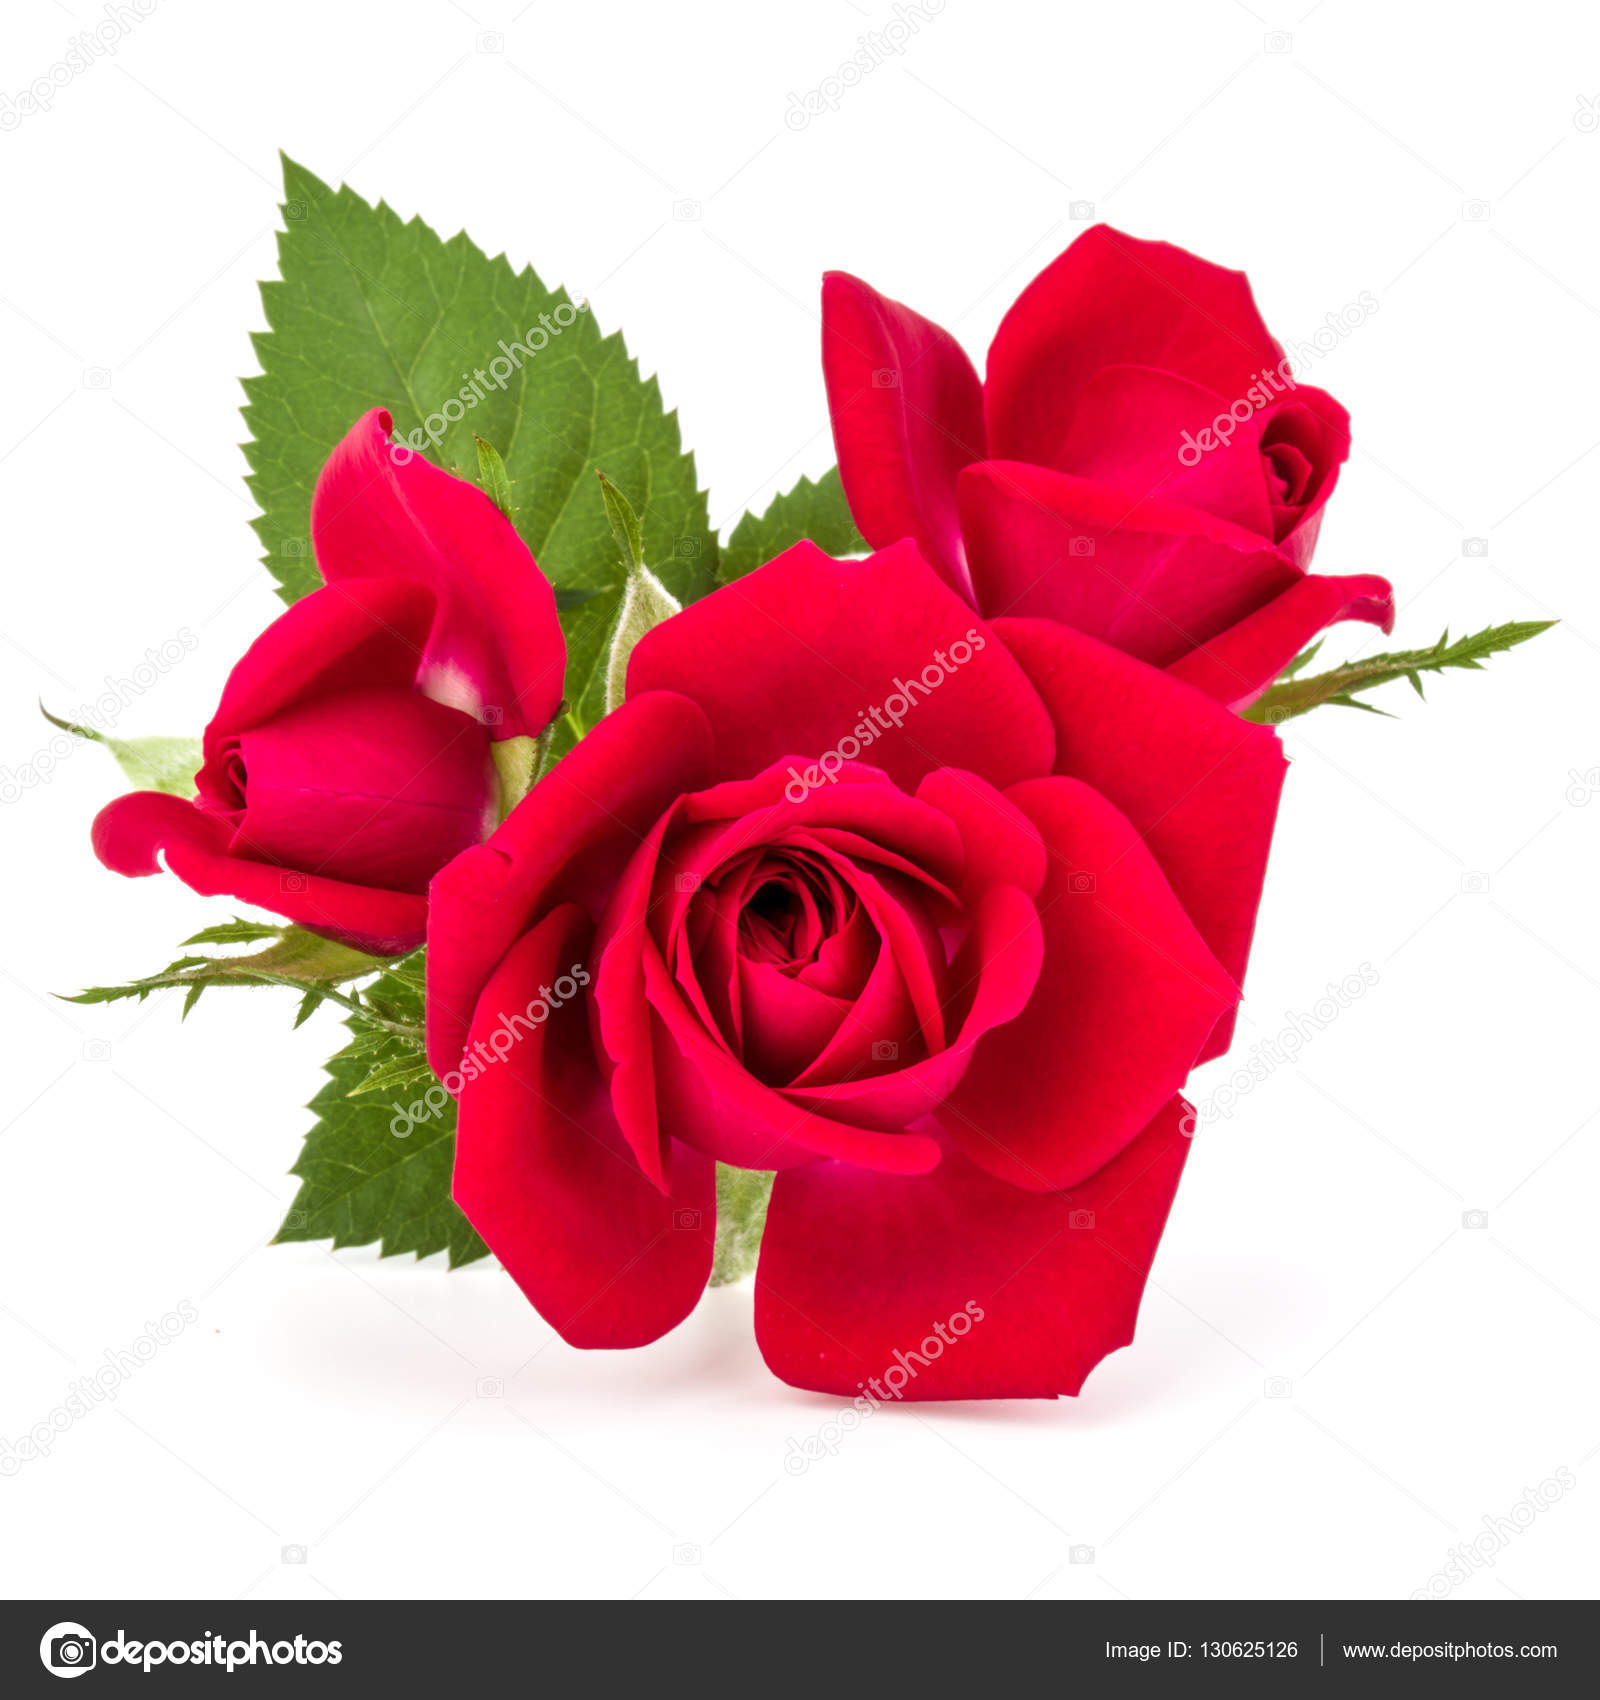 Red Rose Flowers Bouquet Stock Photo Natika 130625126